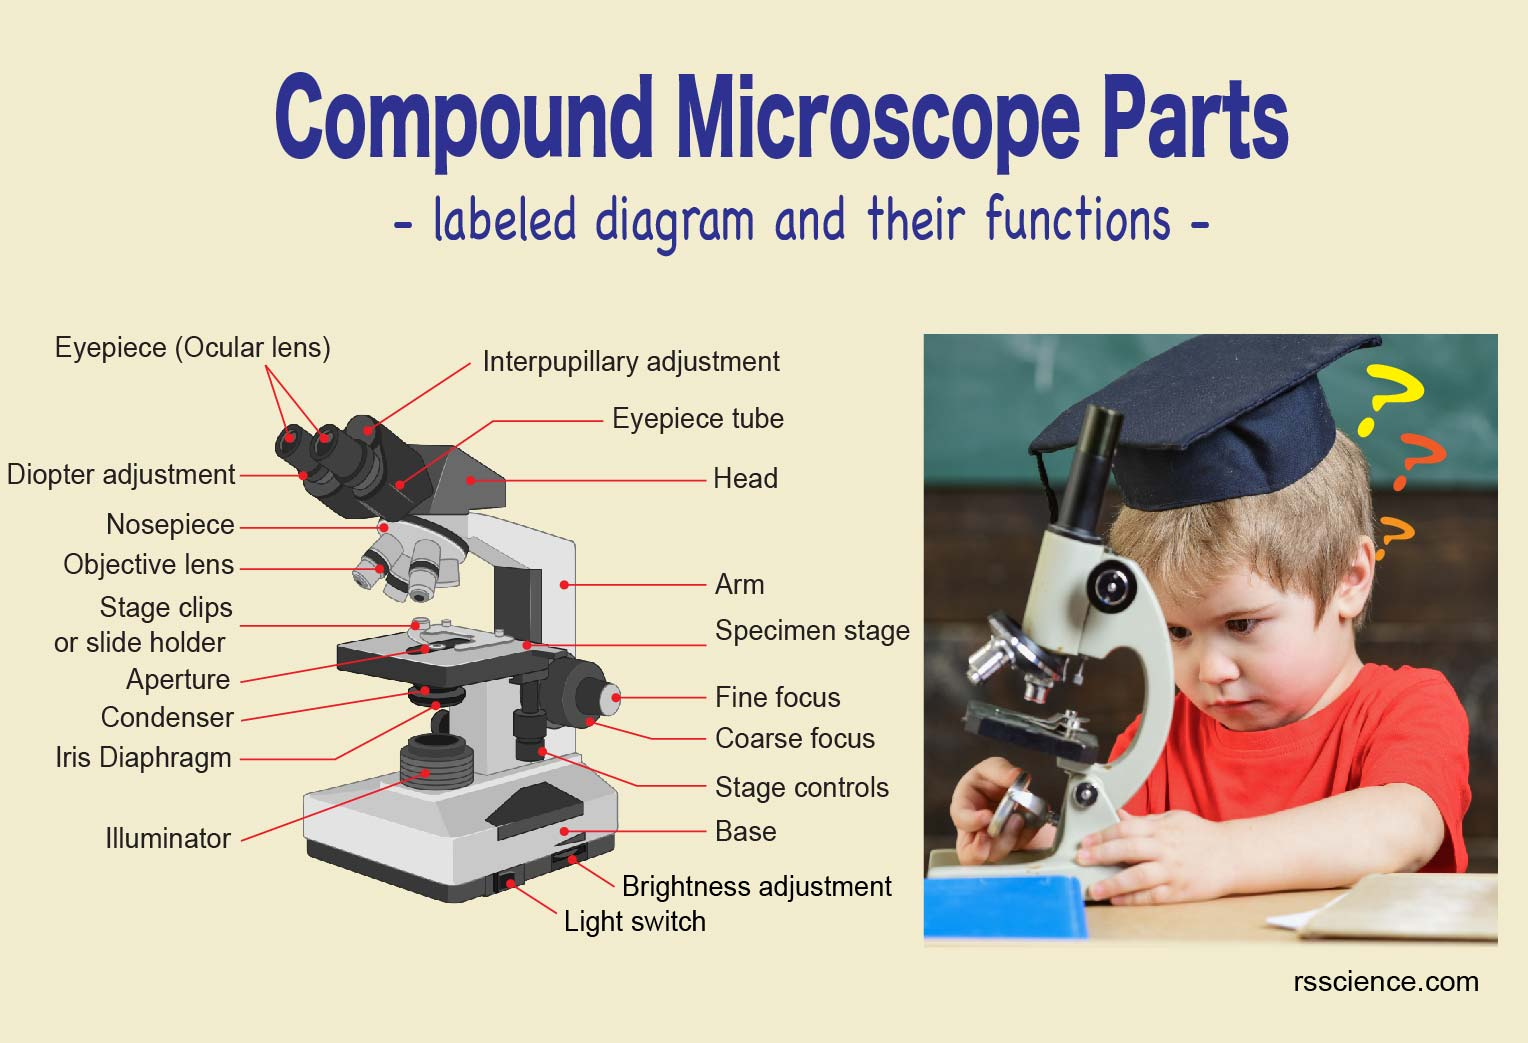 Compound Microscope Parts - Labeled Diagram and their ...